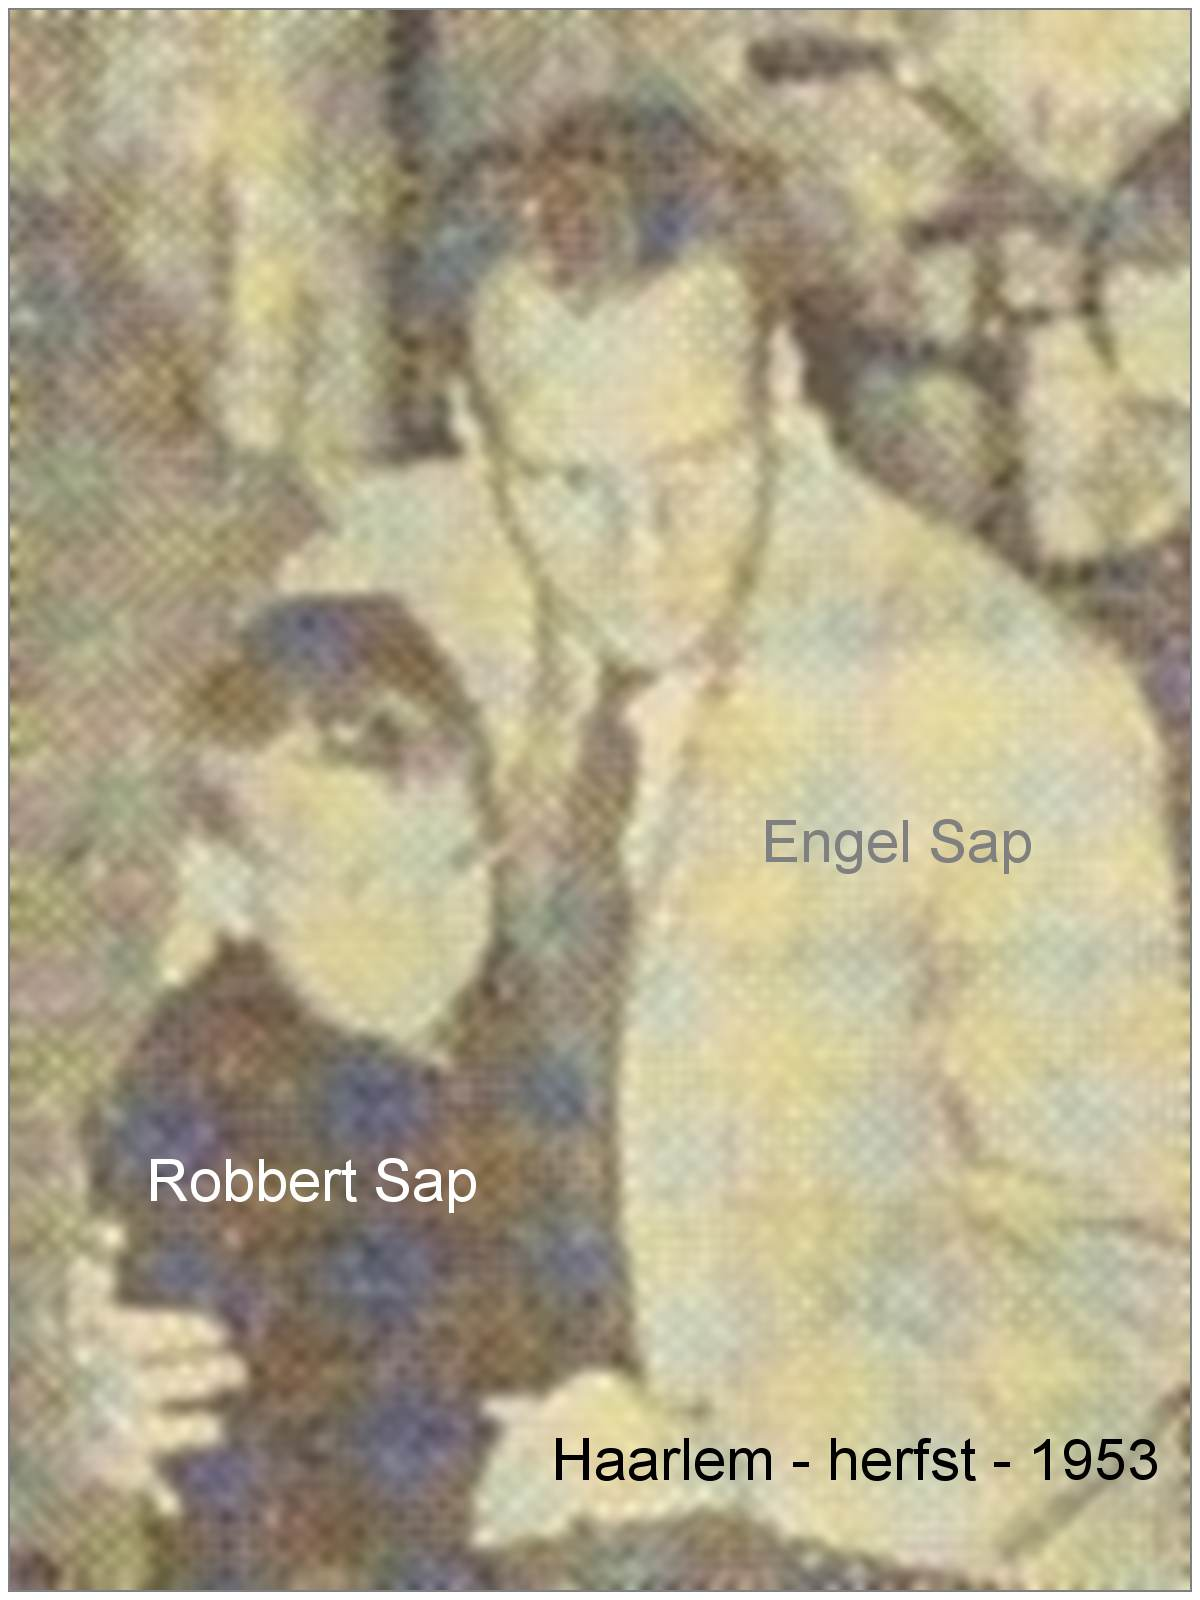 Engel Sap